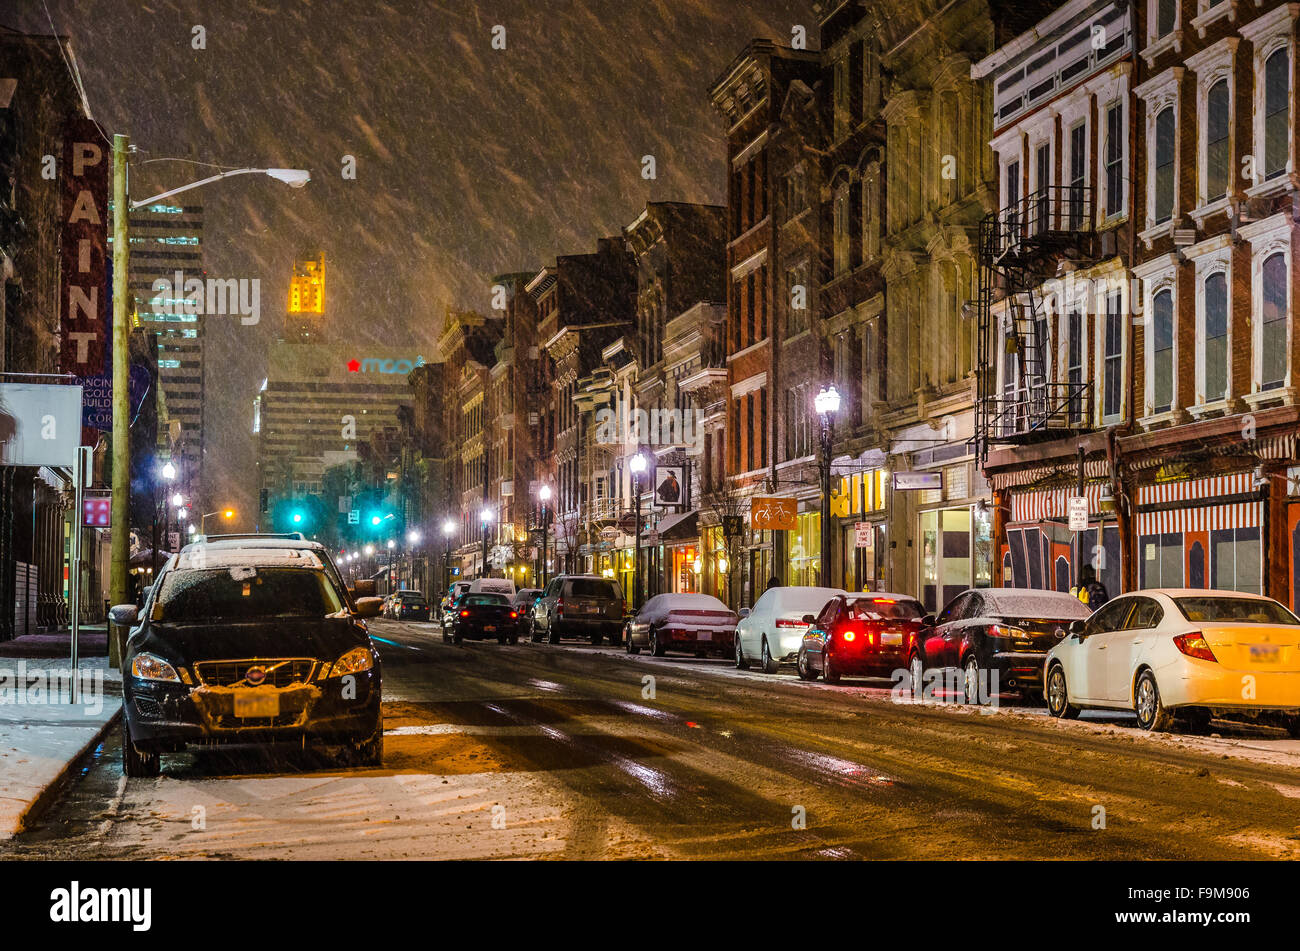 Snow at Over-the-Rhine, an intact 19th-century historic district in Cincinnati. Stock Photo